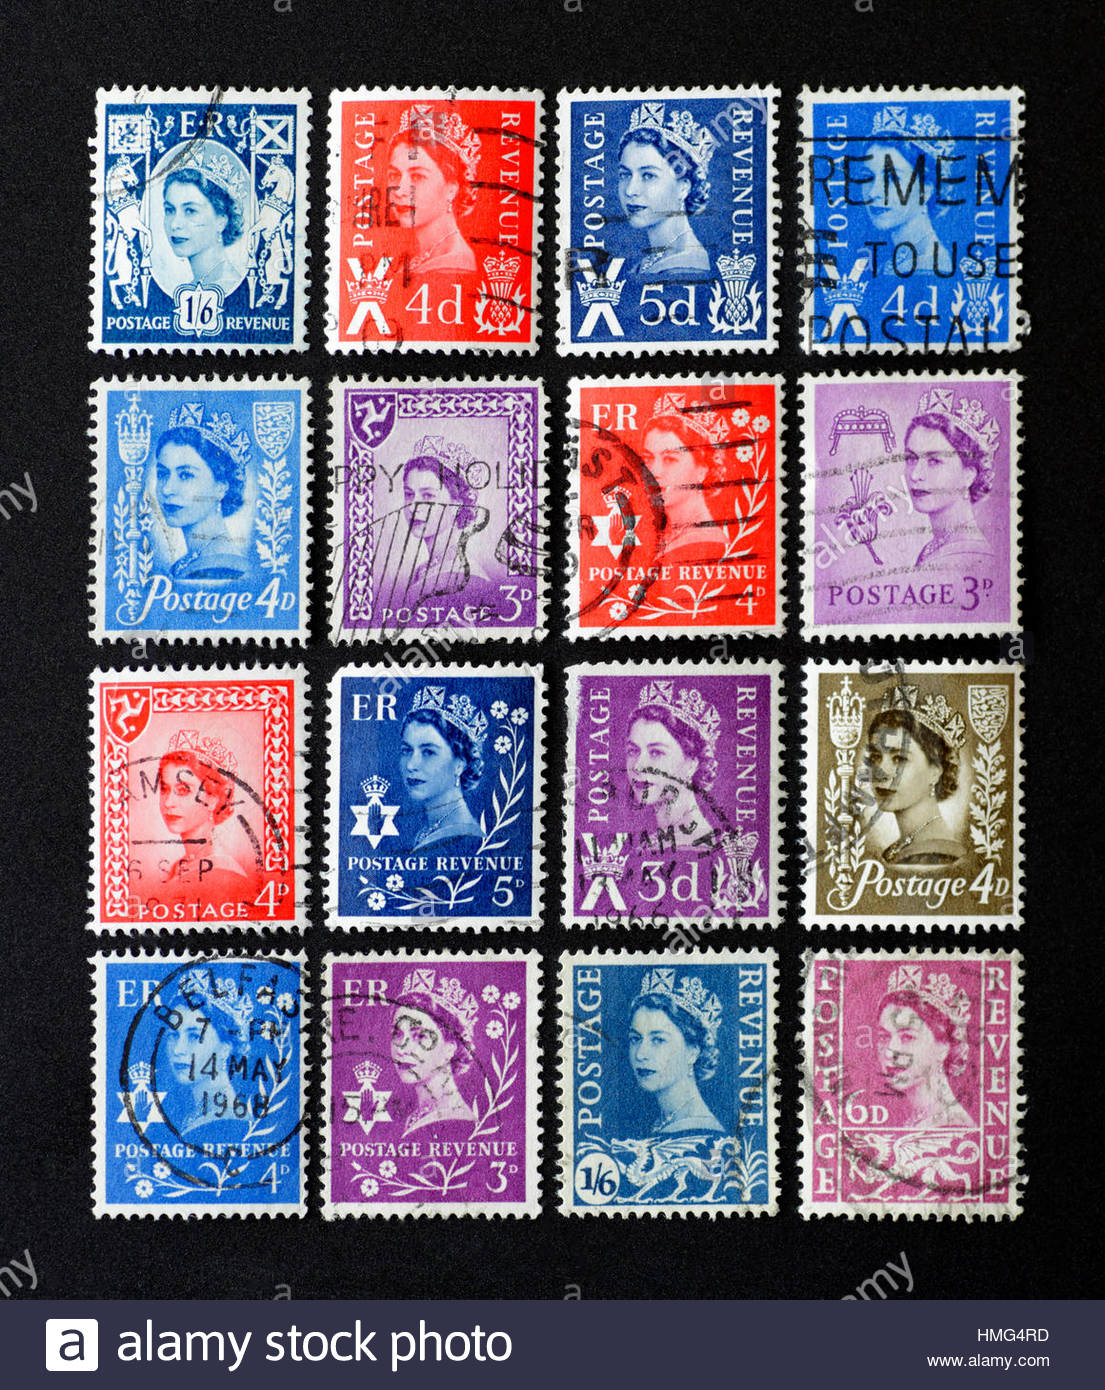 Old collection of used British Wildings Stamps from the 1950s and 1960s - Stock Image